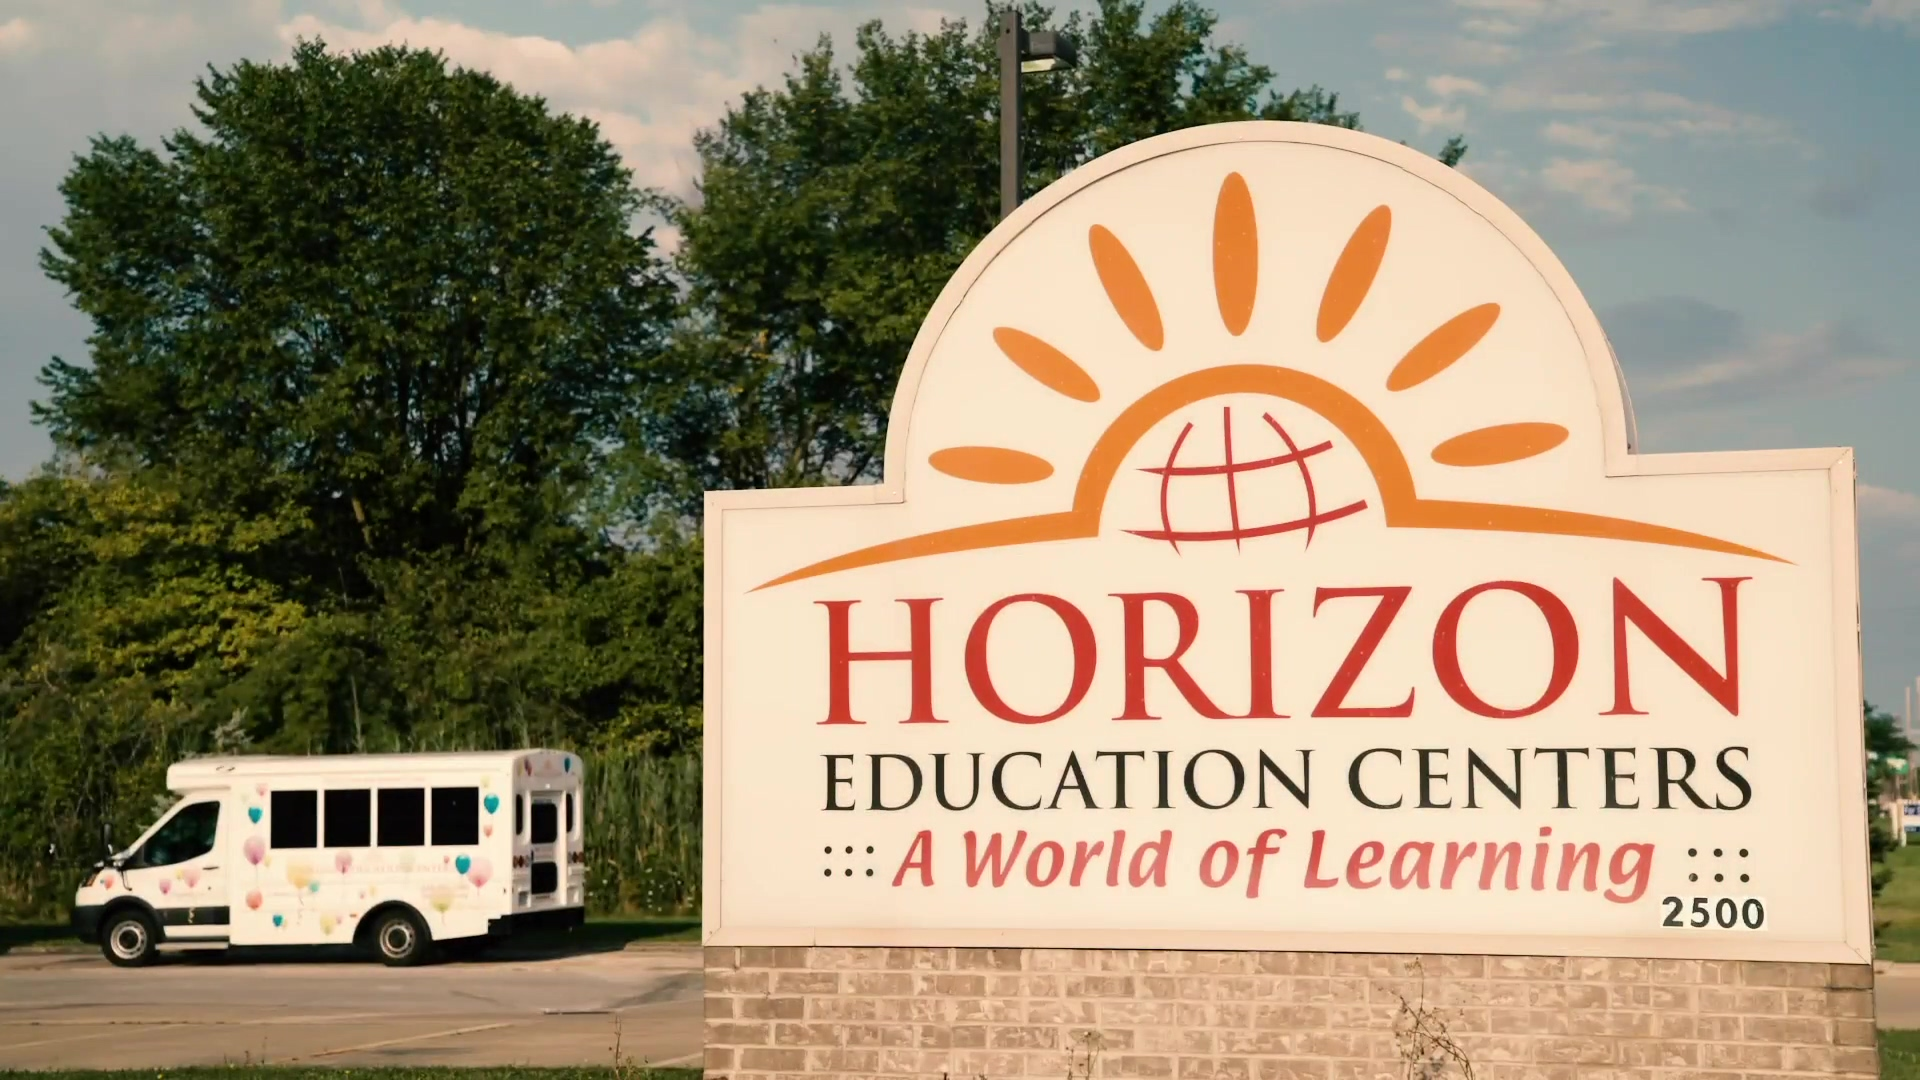 Horizon Education Centers - Video Tour (Updated)